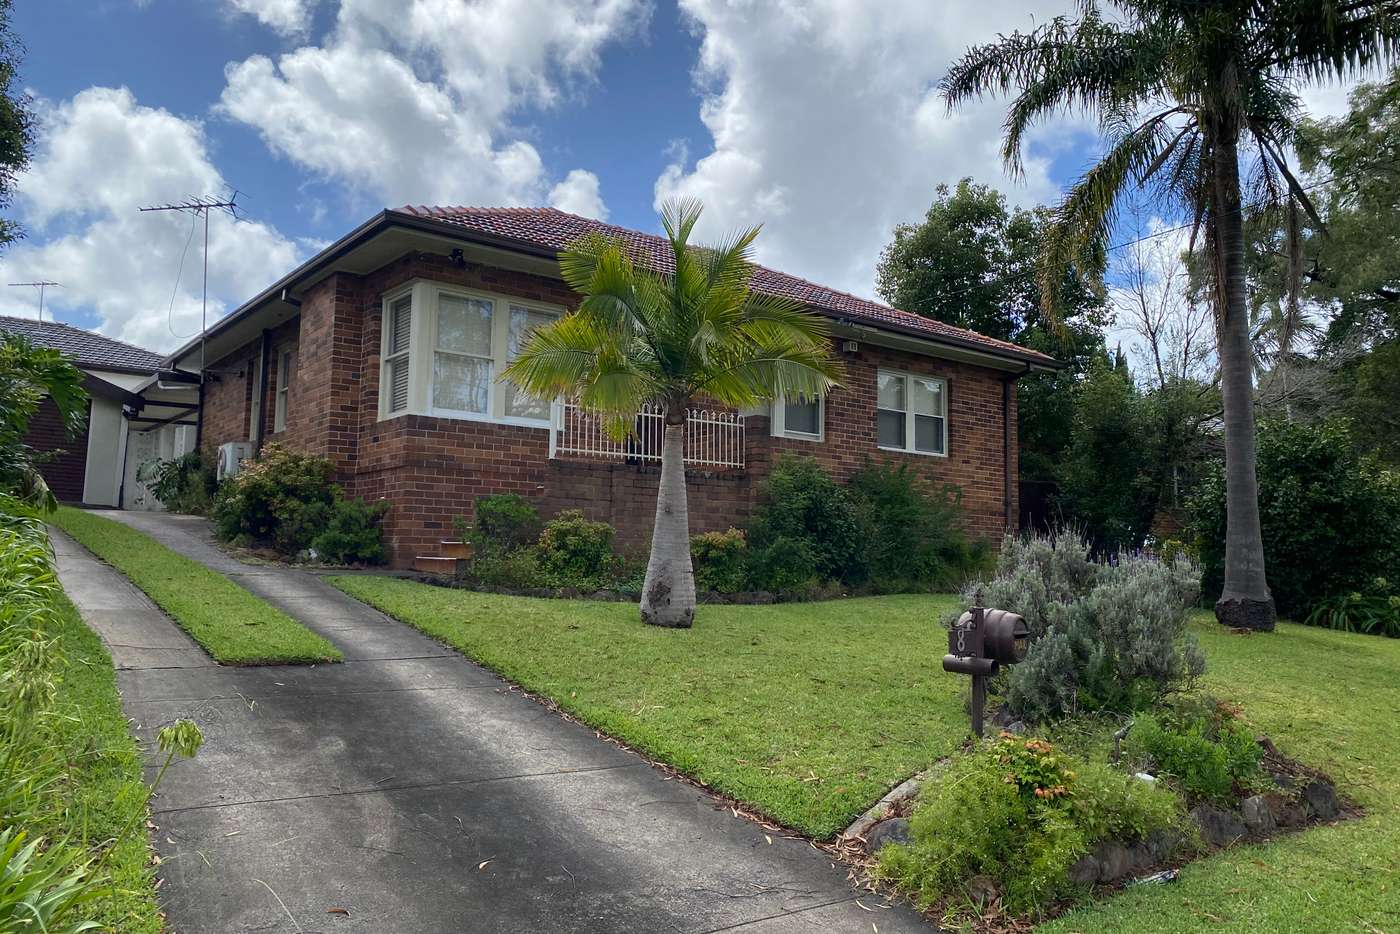 Main view of Homely house listing, 8 Docos Crescent, Bexley NSW 2207